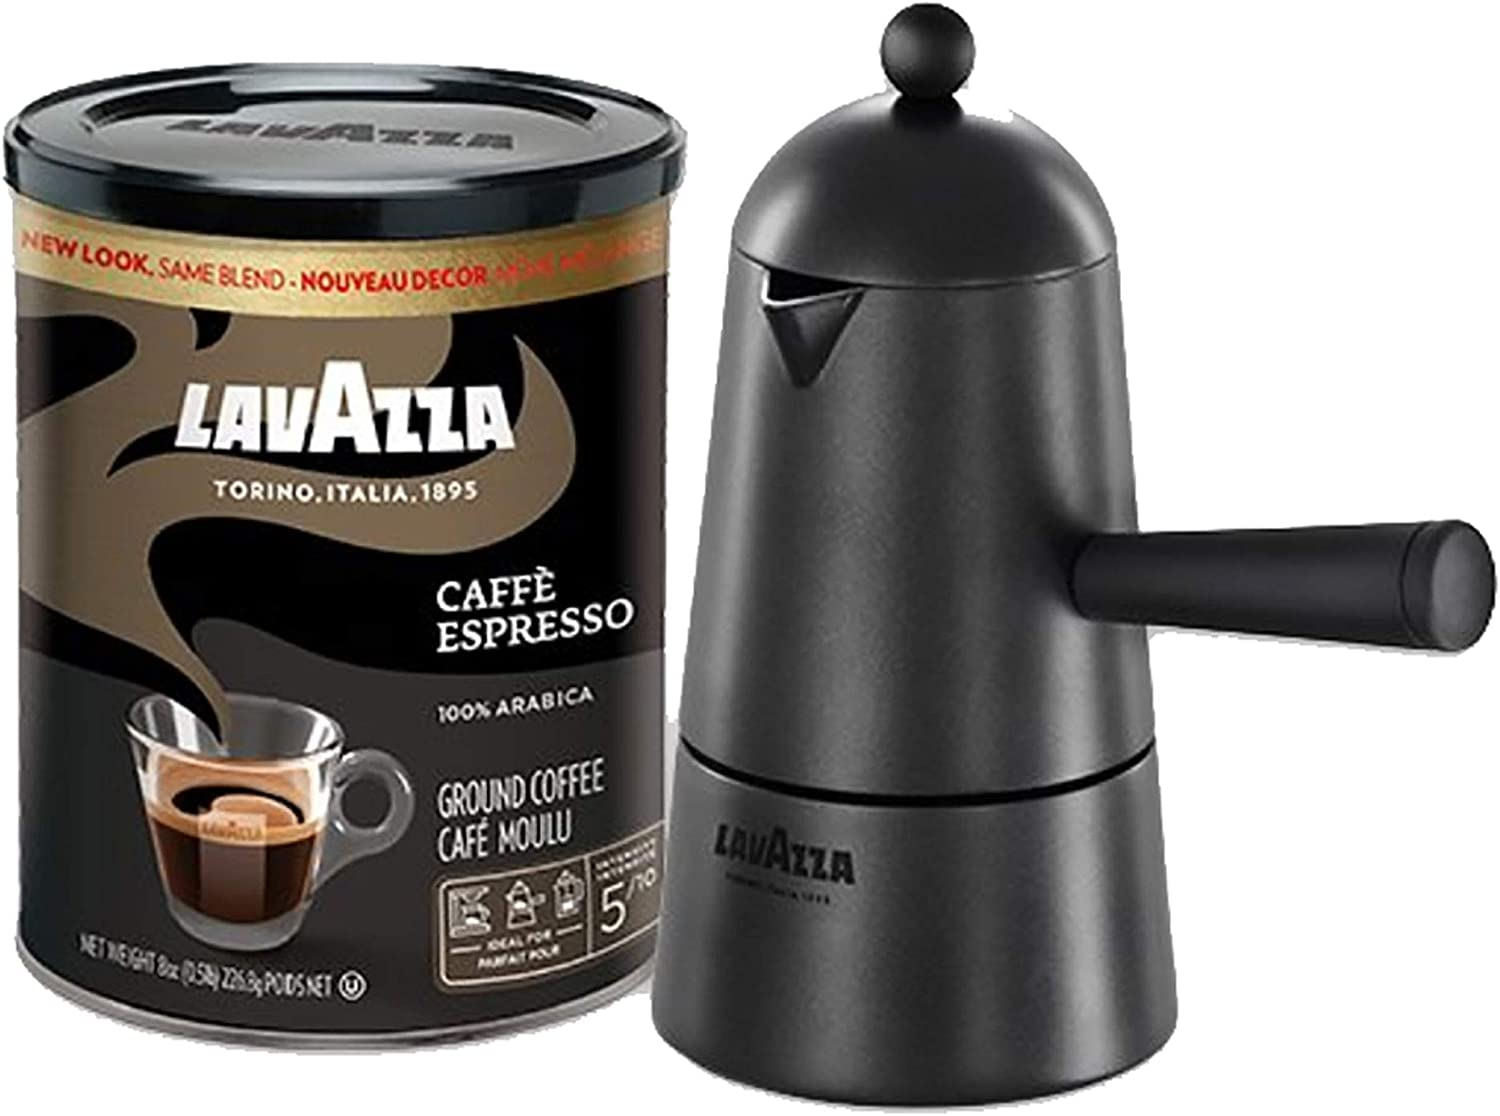 Lavazza Carmencita Gift Pack, Stovetop Maker & Espresso Italiano 8 Oz. Tin Can, Black (Packaging may vary)